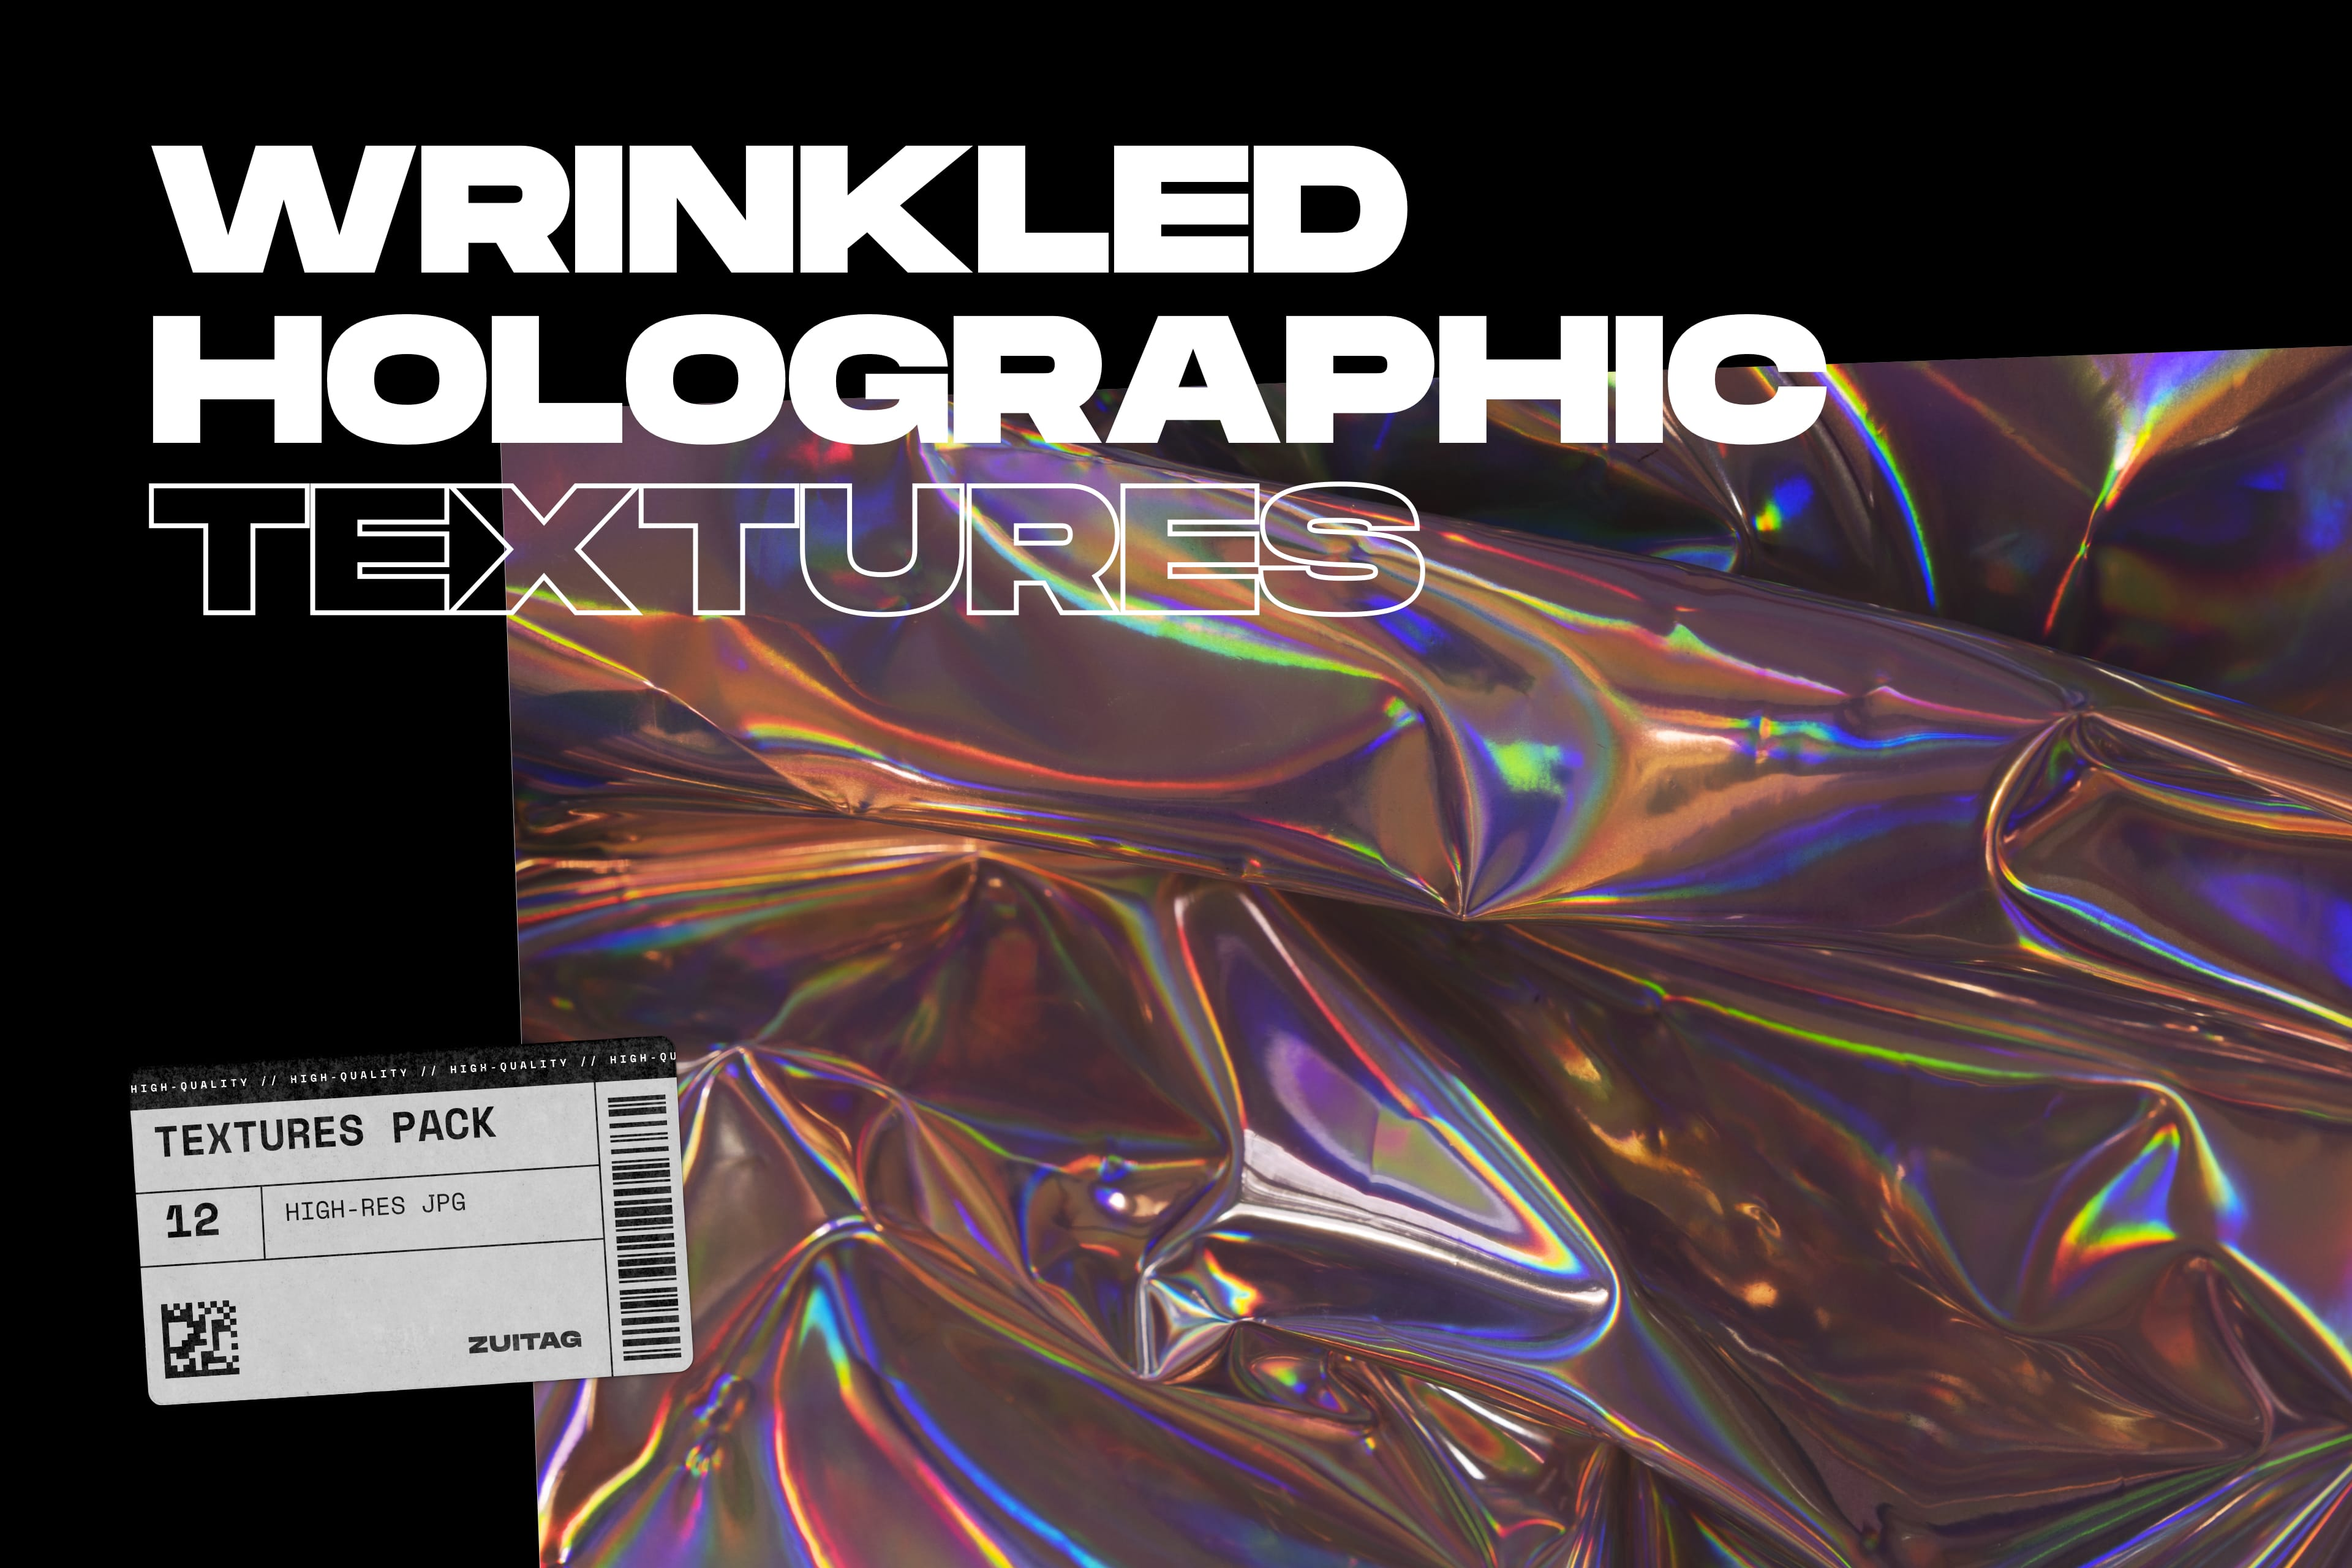 Wrinkled Holographic Textures - Cover